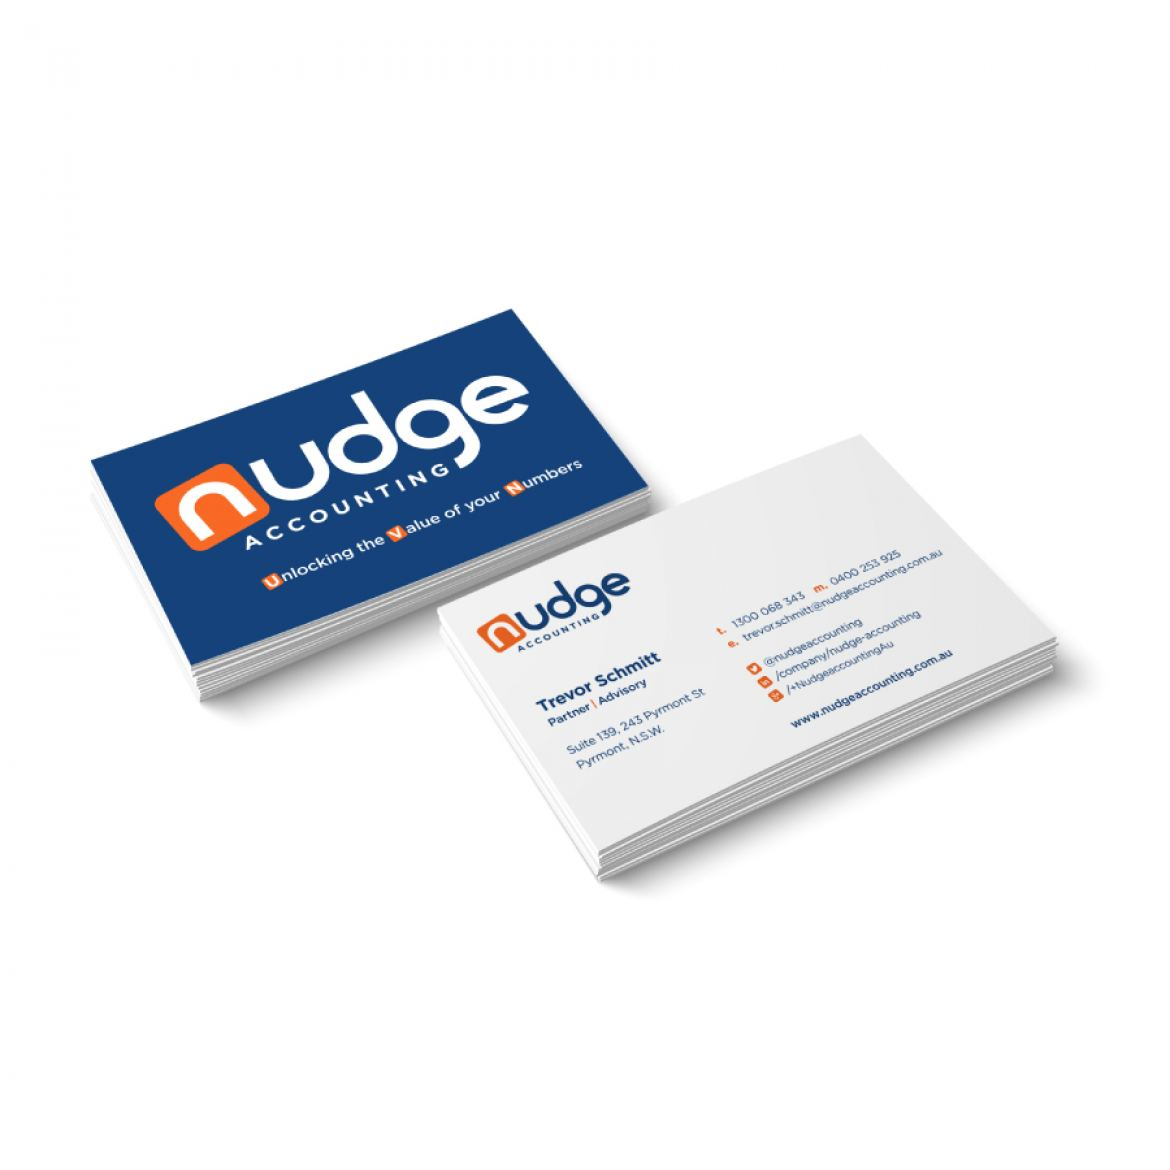 Nudge Accounting - Professional Services - Accounting